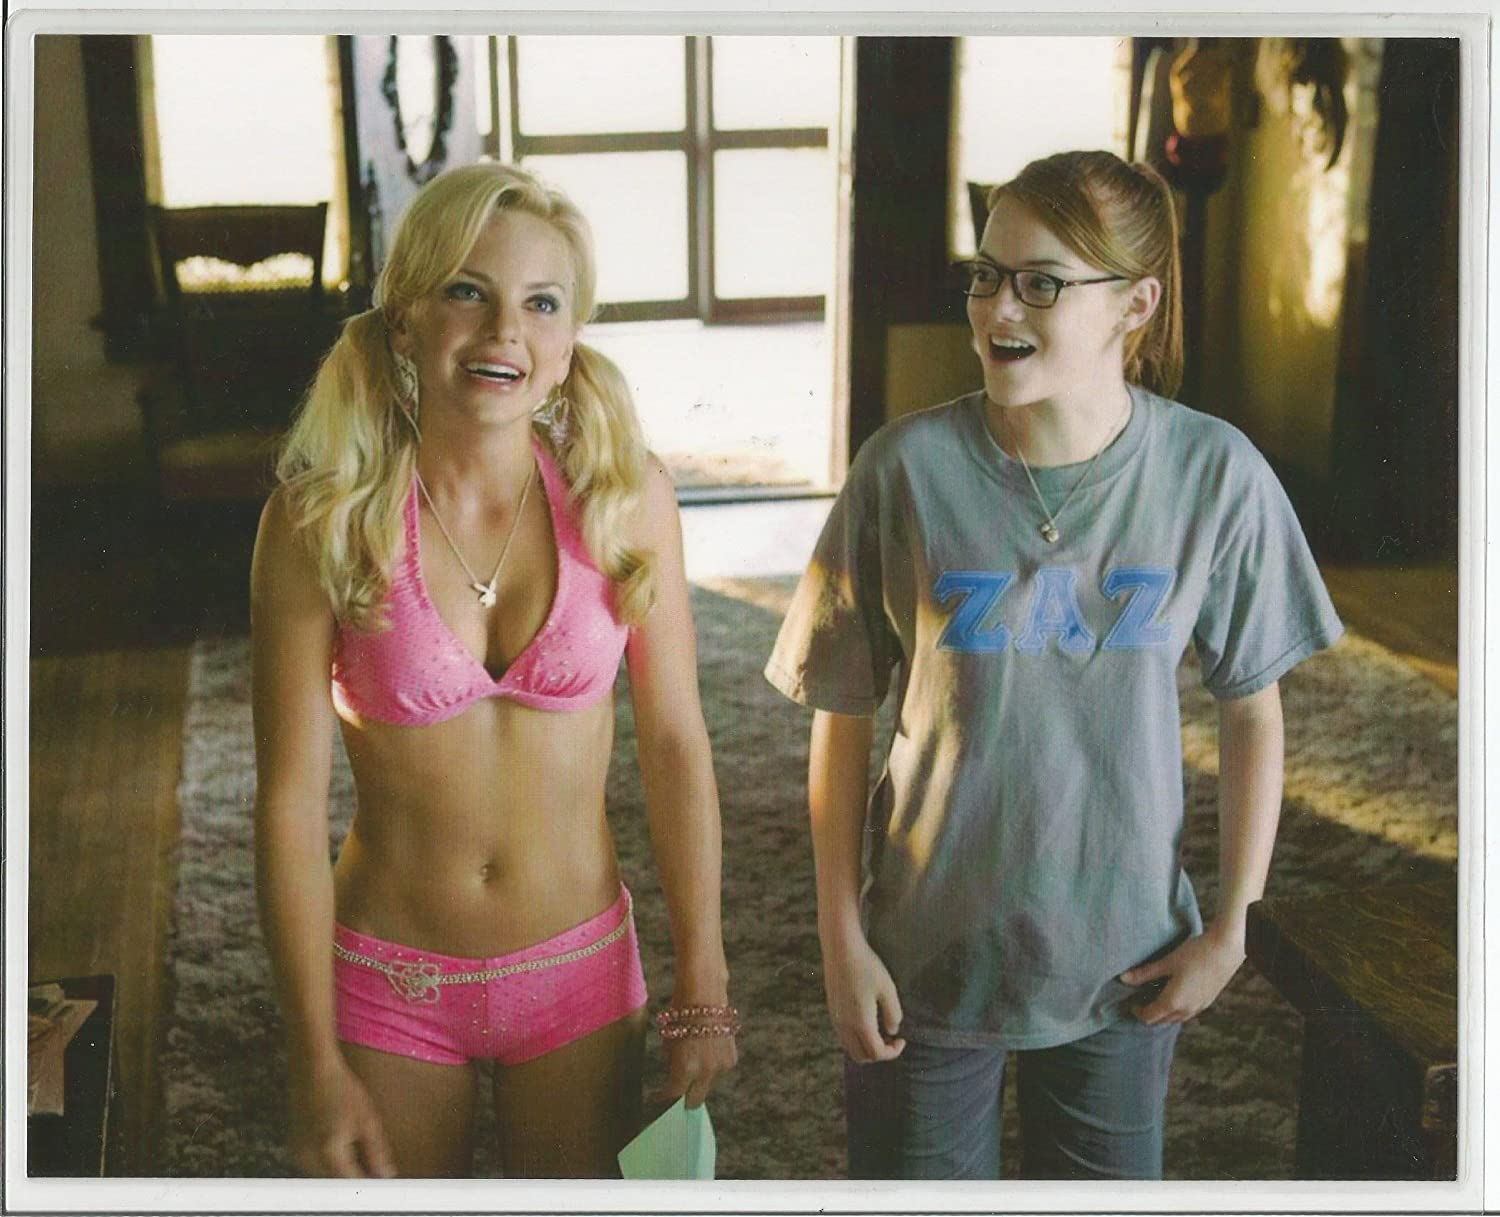 Incredible The House Bunny Anna Faris And Emma Stone 8 X 10 Laminated Interior Design Ideas Philsoteloinfo